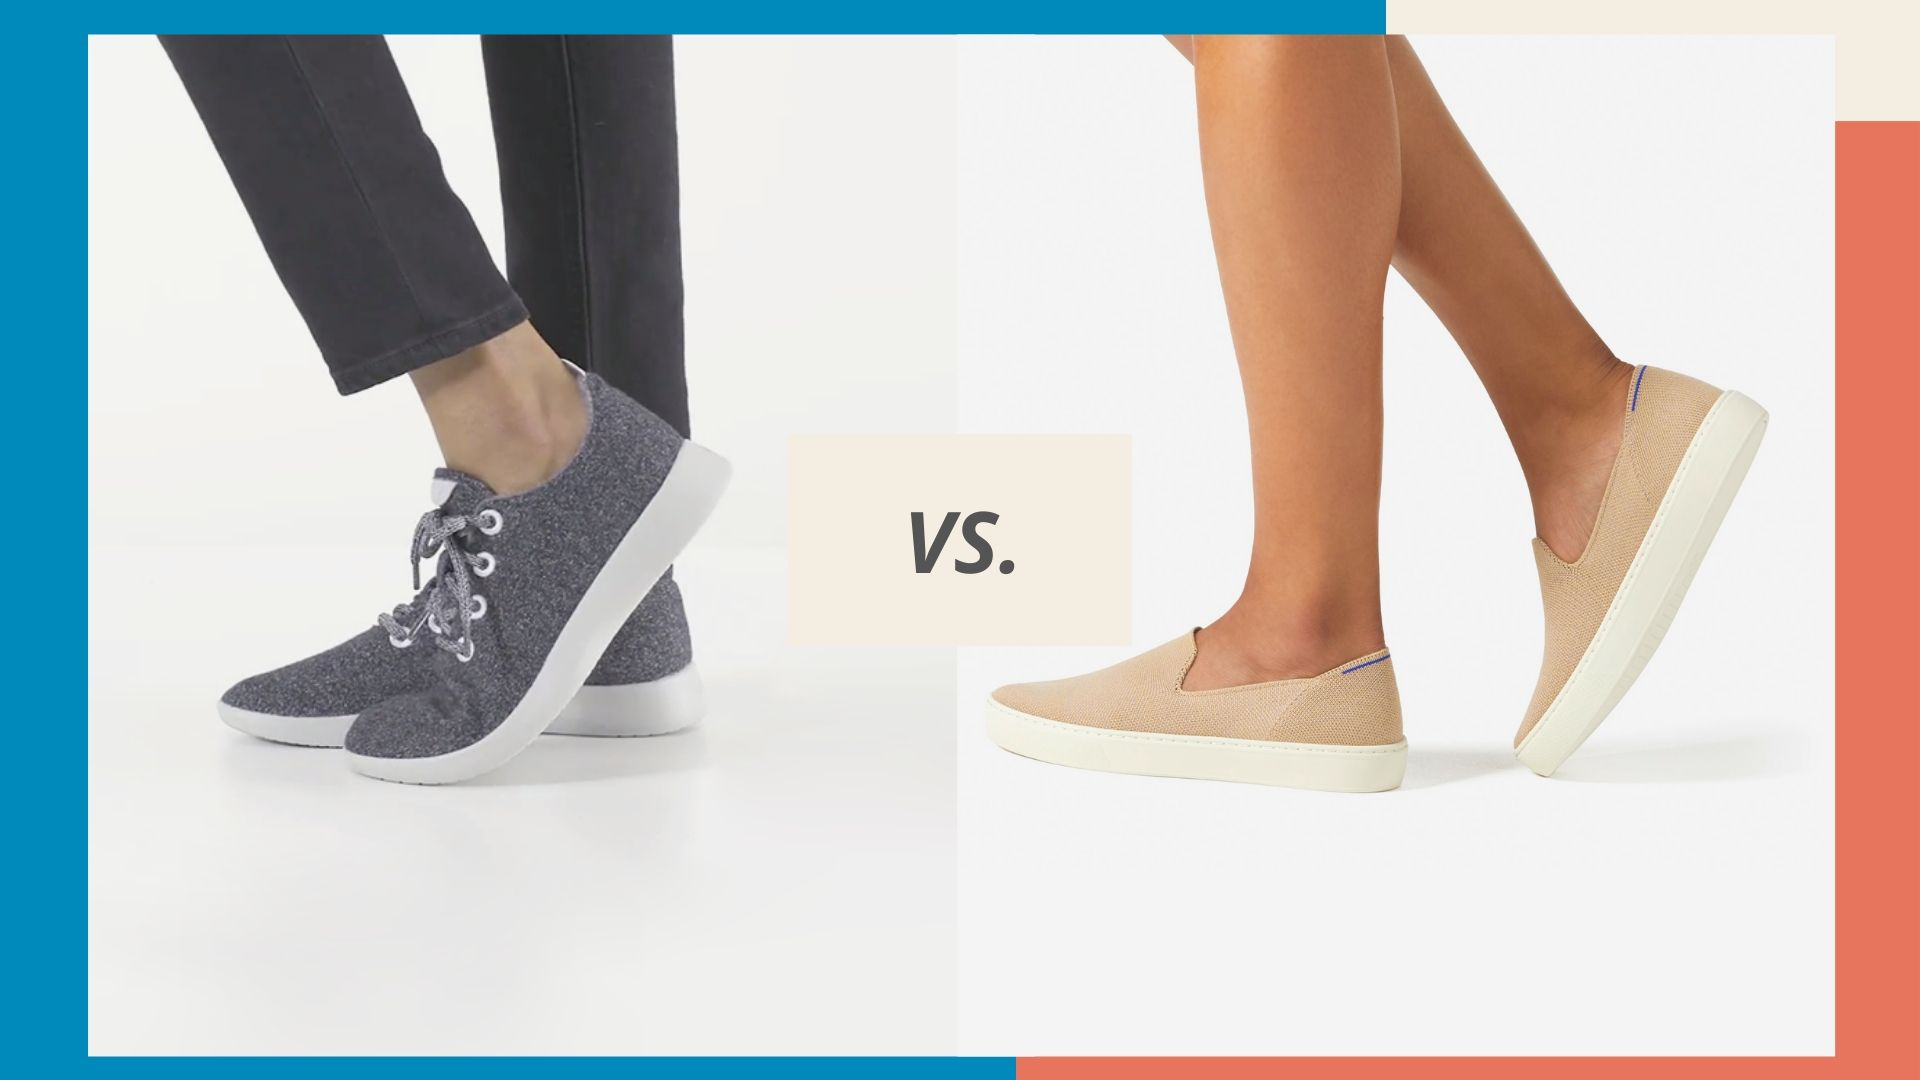 Which Comfortable Travel Shoe Brand Is